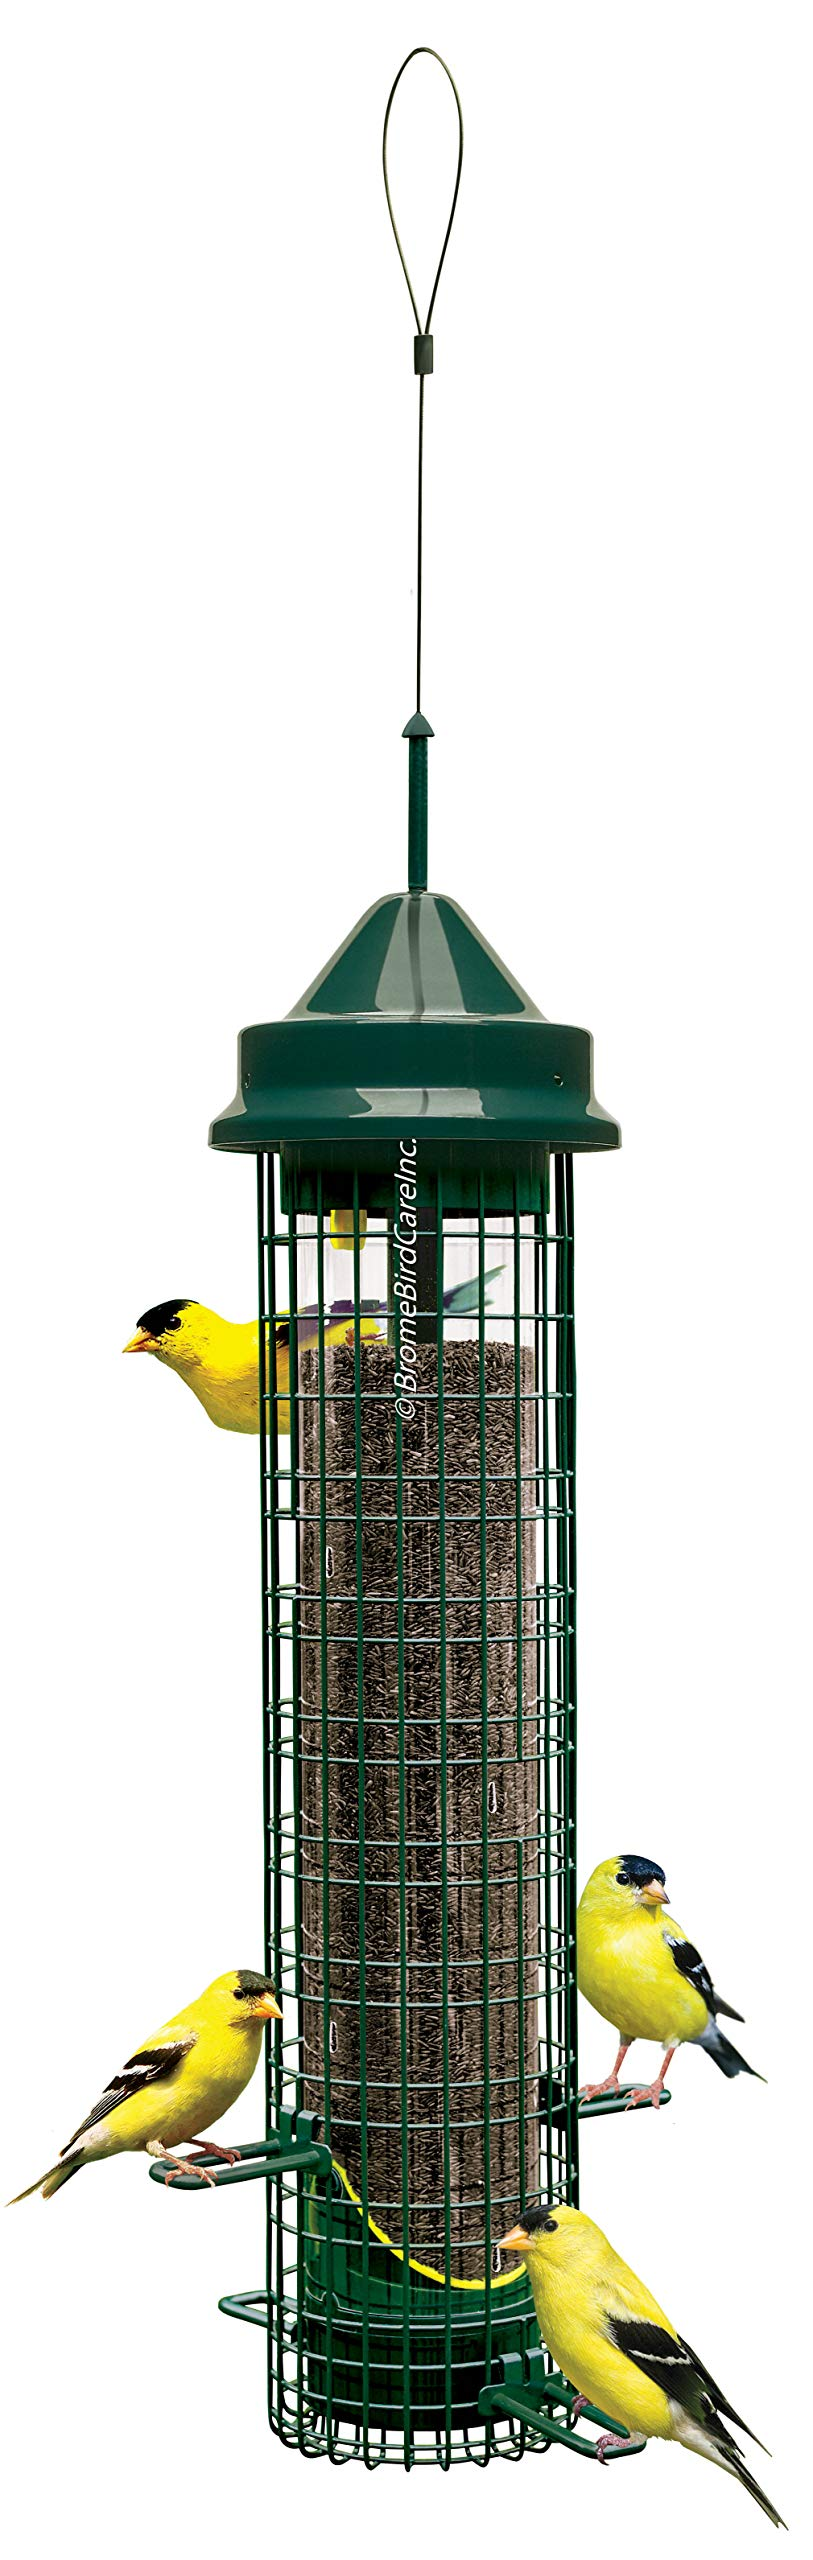 Squirrel Buster Finch Squirrel-proof Bird Feeder w/4 Metal Perches & 8 Feeding Ports, 2.4-pound Thistle/Nyjer Seed Capacity by Brome